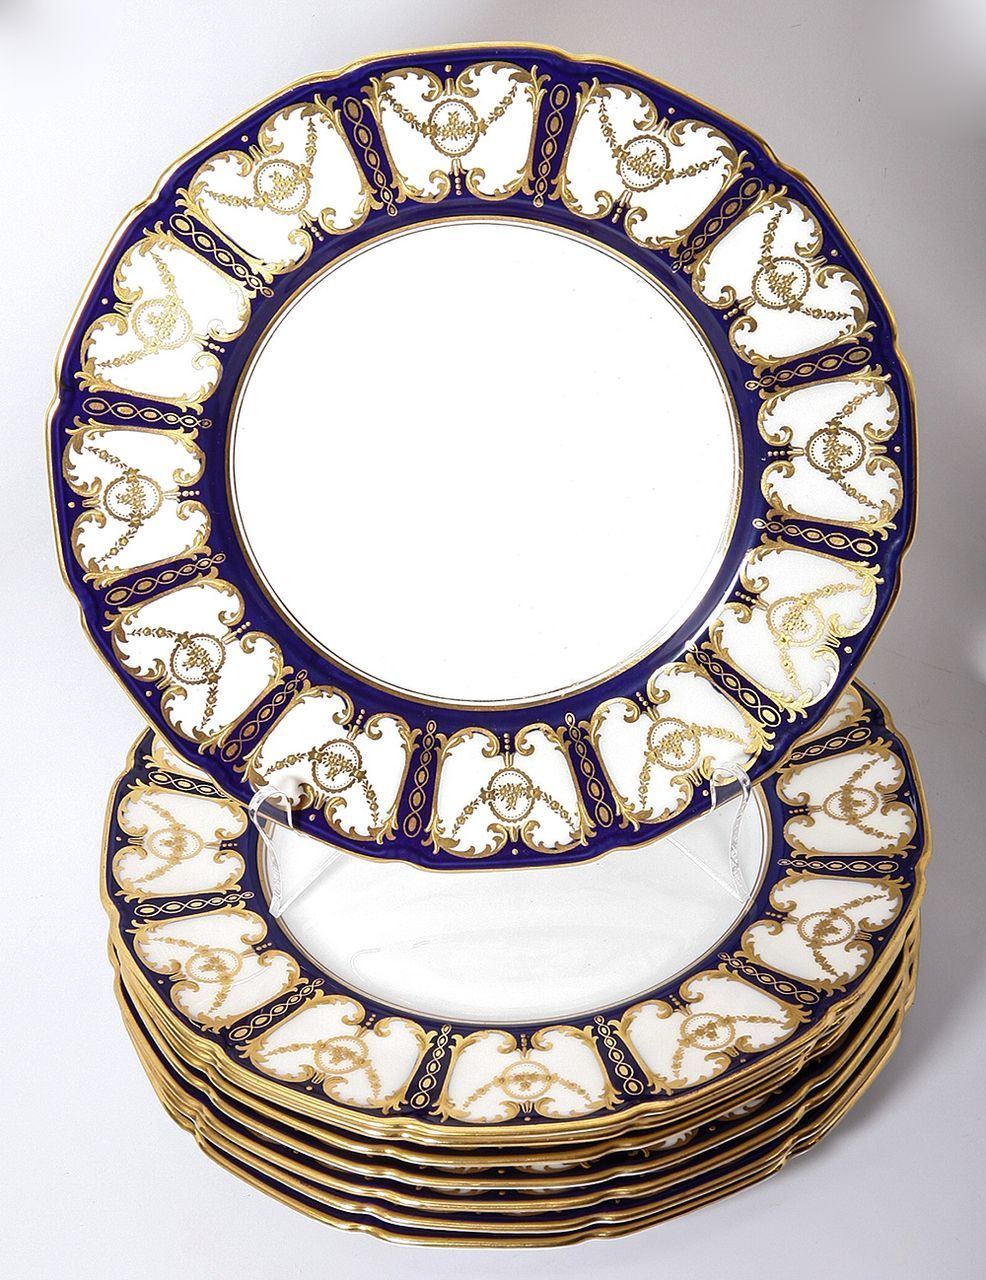 C 1921 Royal Doulton 11pc Dinner Plate Set Encrusted Raised Gold Enamel Cobalt